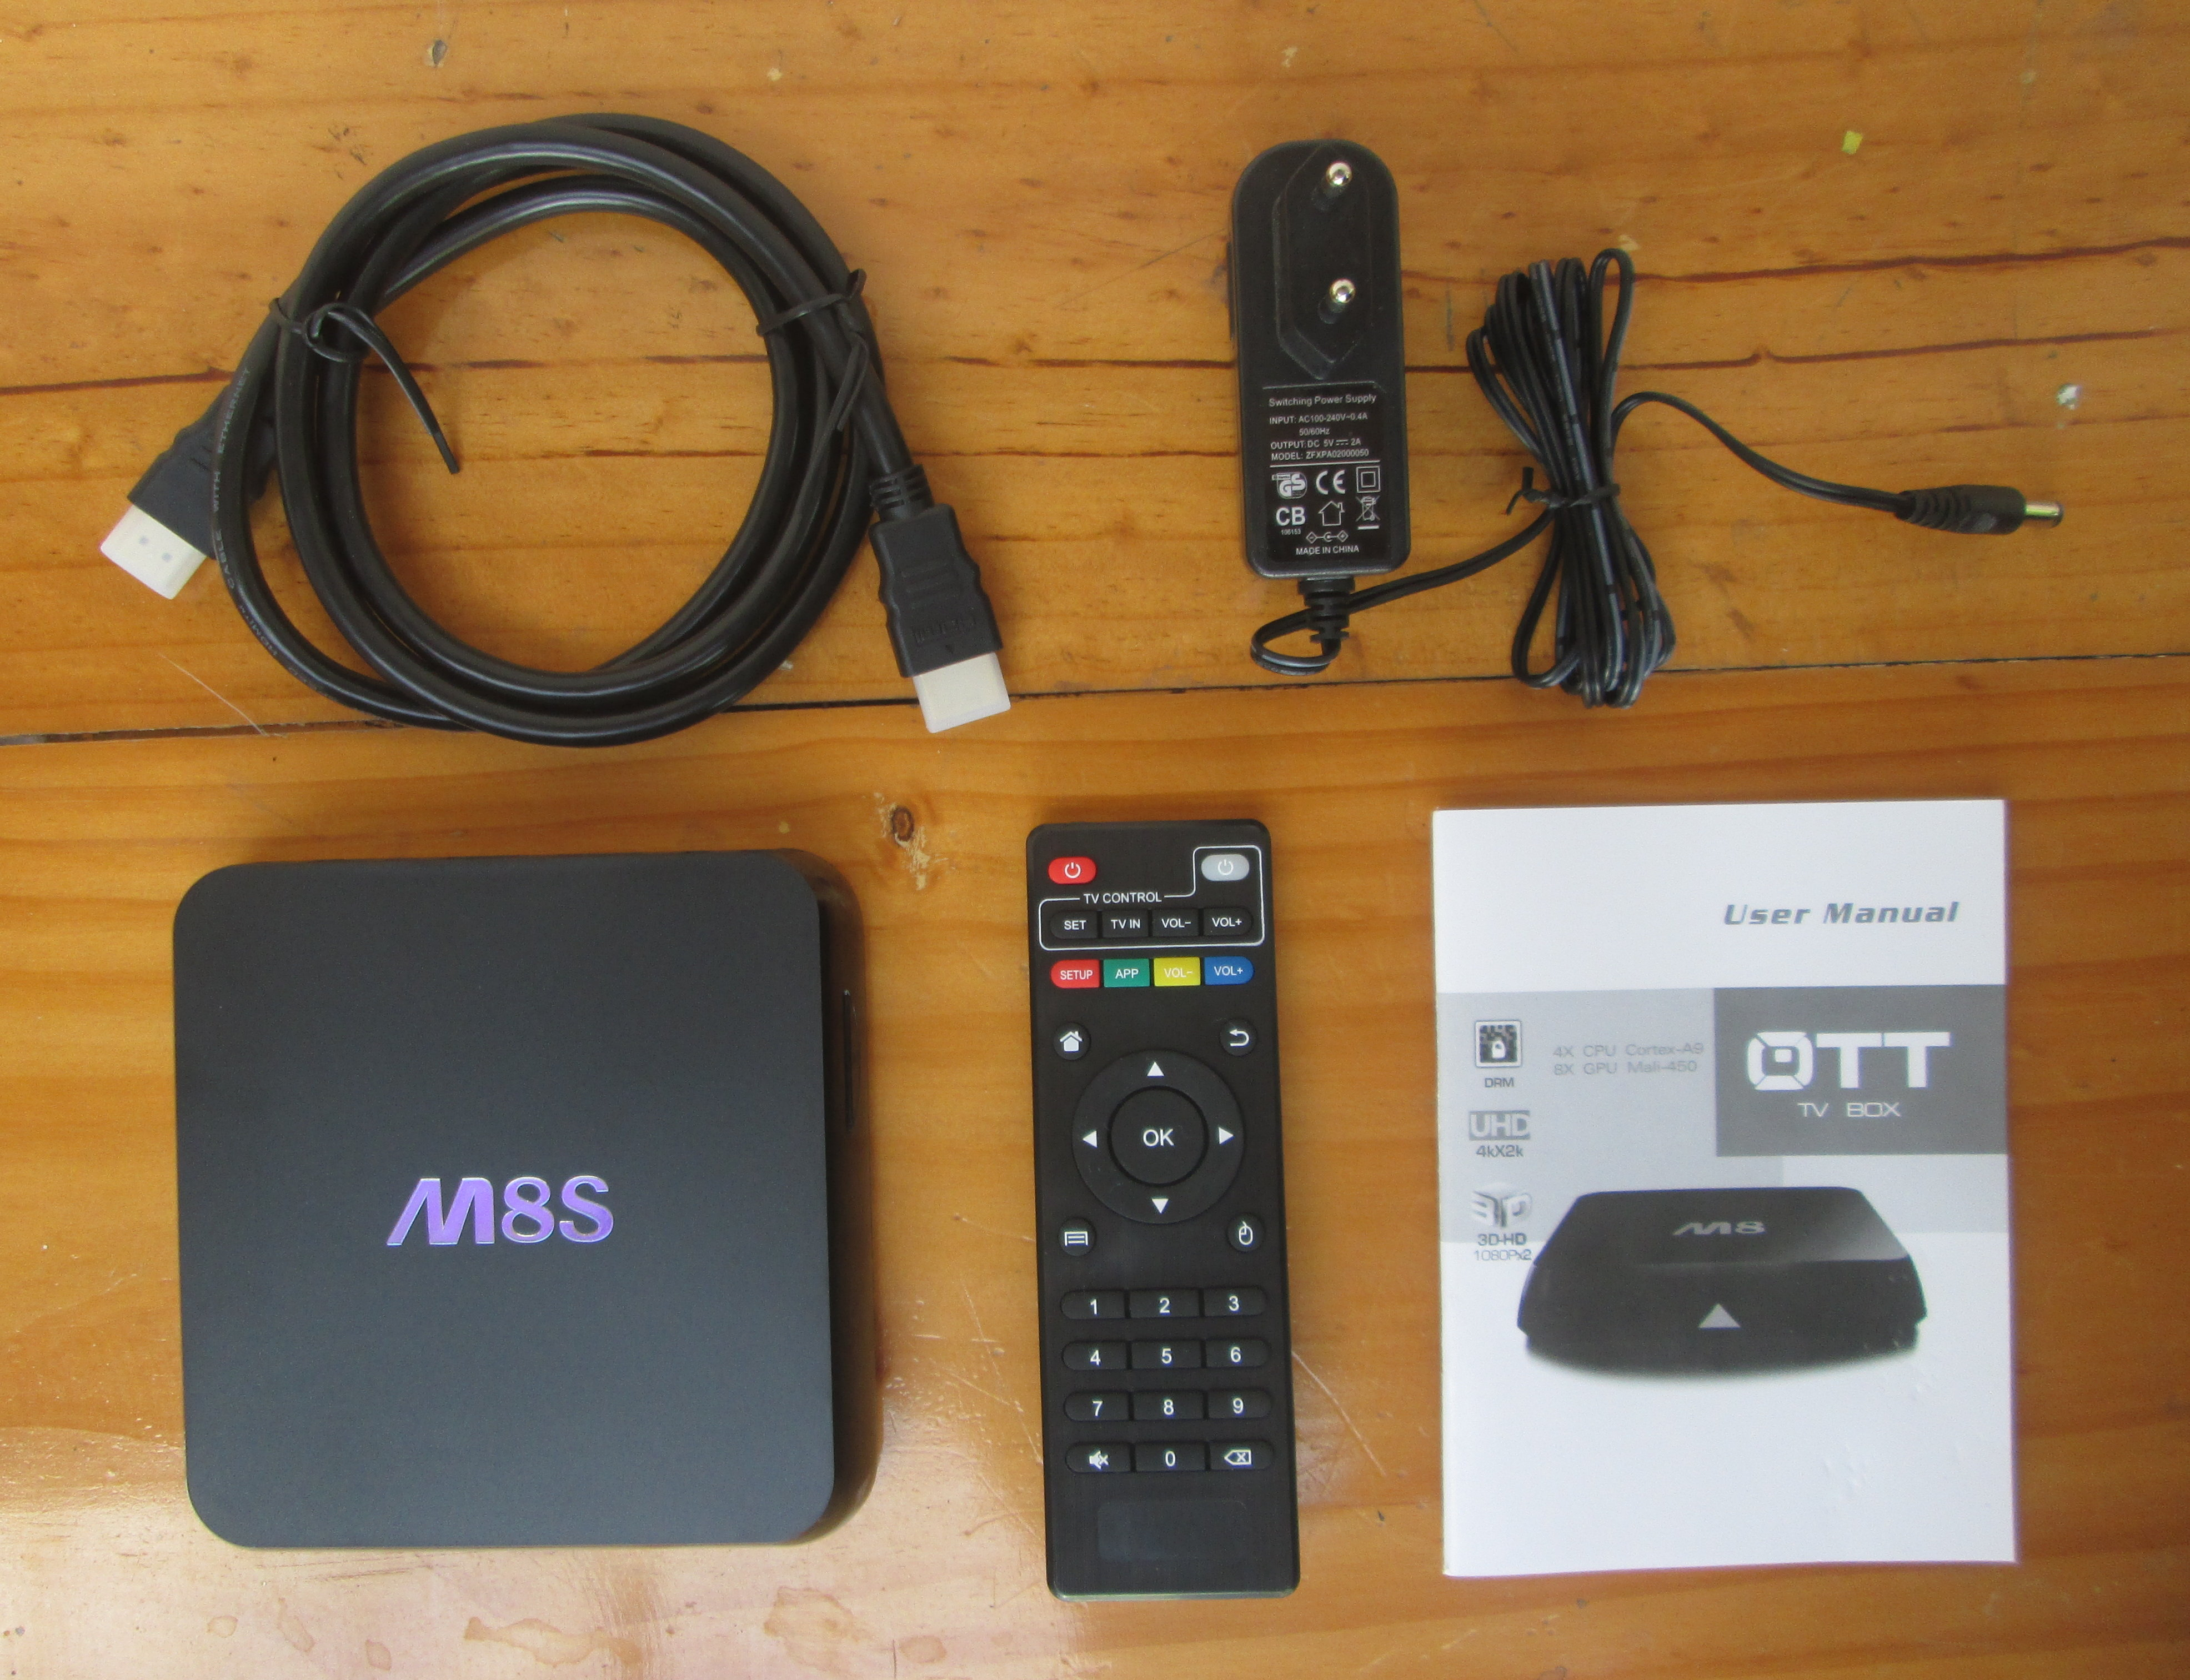 Unboxing of Eny M8S H 265 / 4K Android Media Player Powered